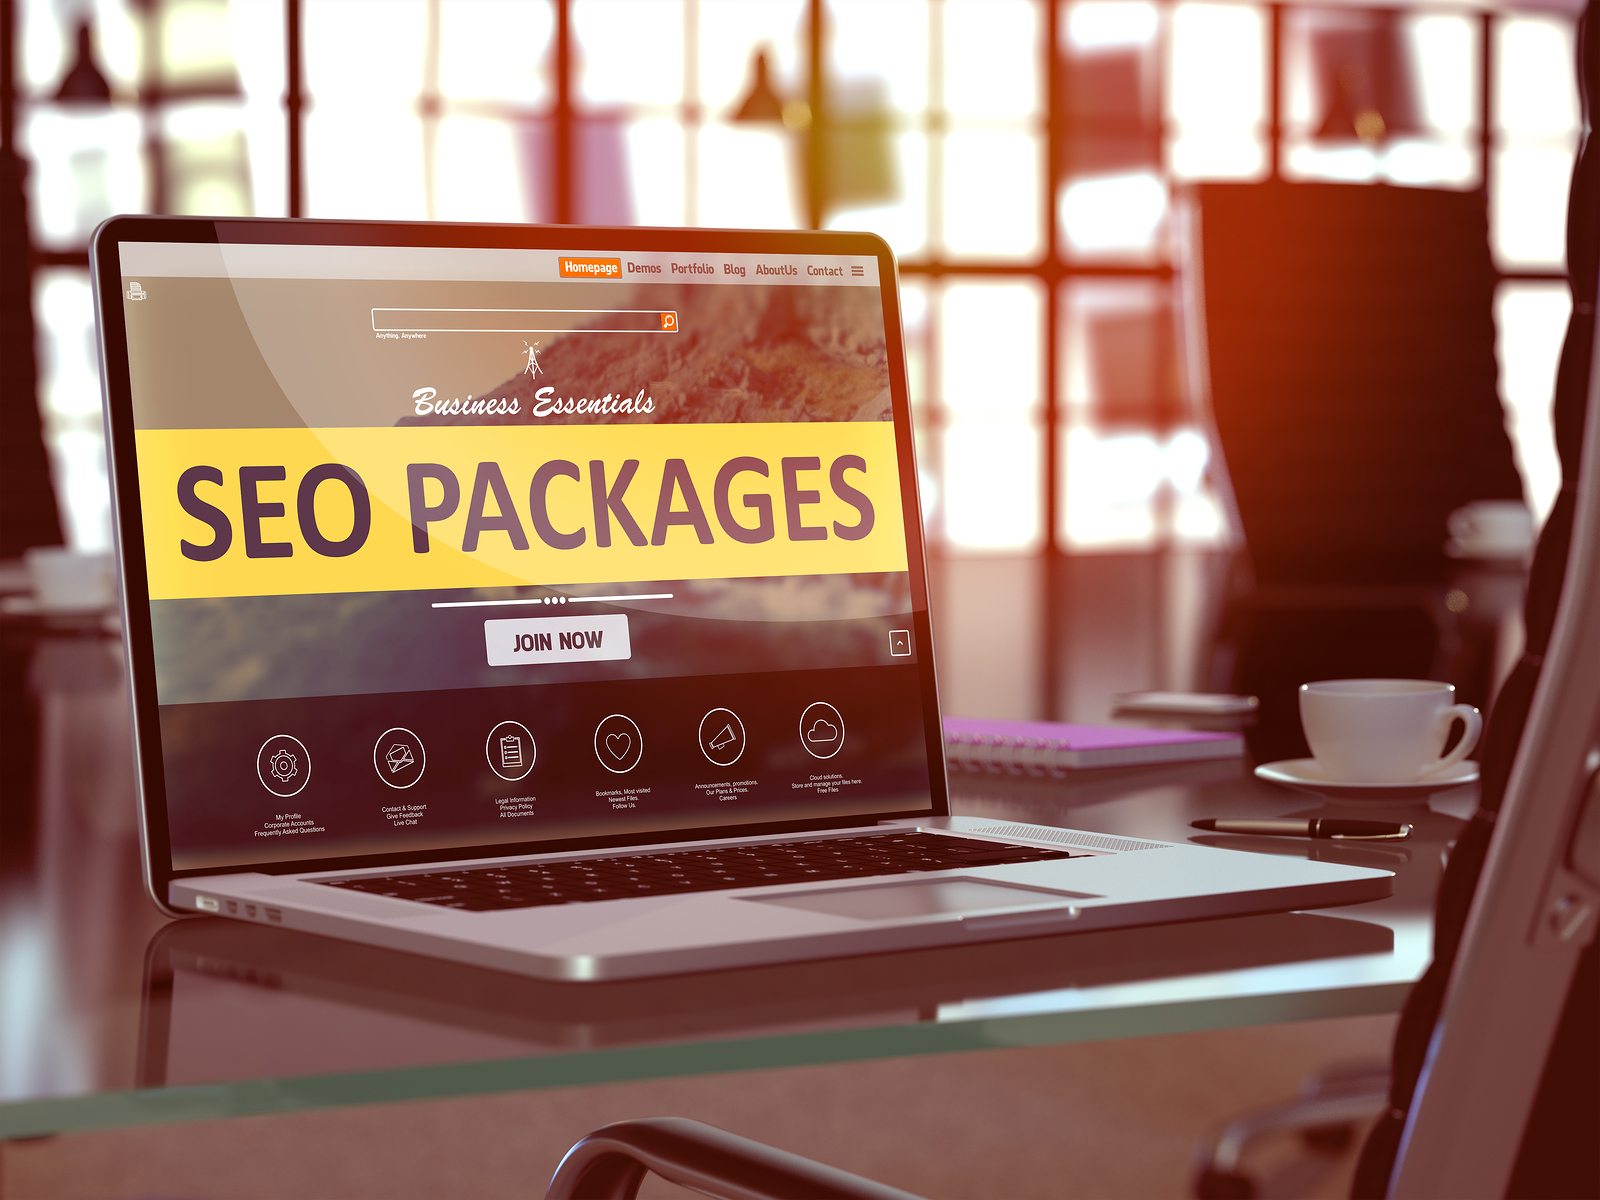 Don't have money to put in marketing: Go for affordable SEO Packages